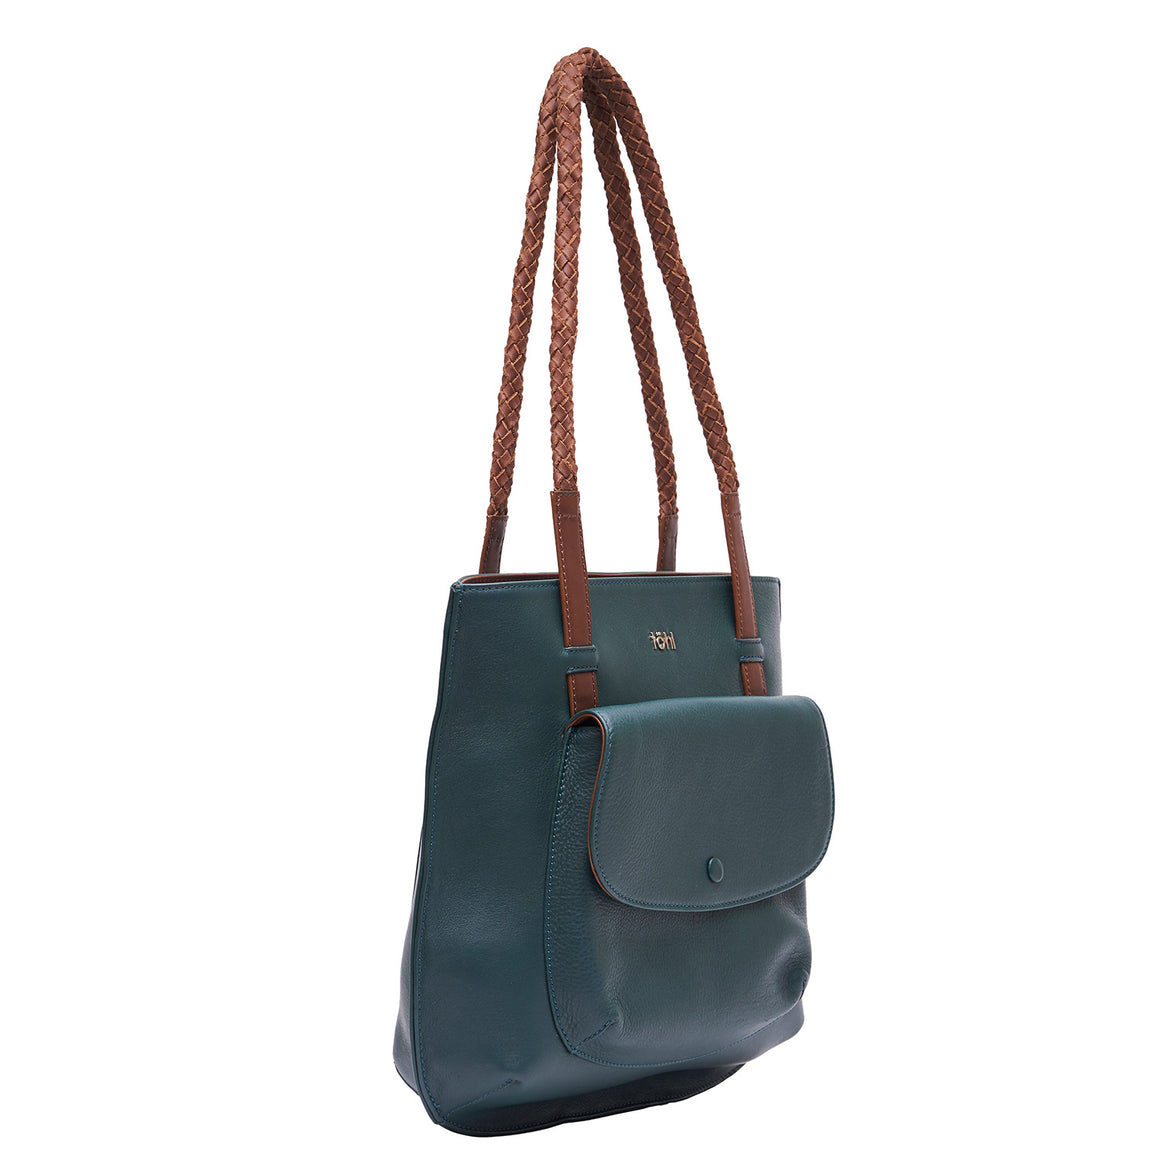 TT 0007 - TOHL GARRETT WOMEN'S TOTE BAG - FOREST GREEN